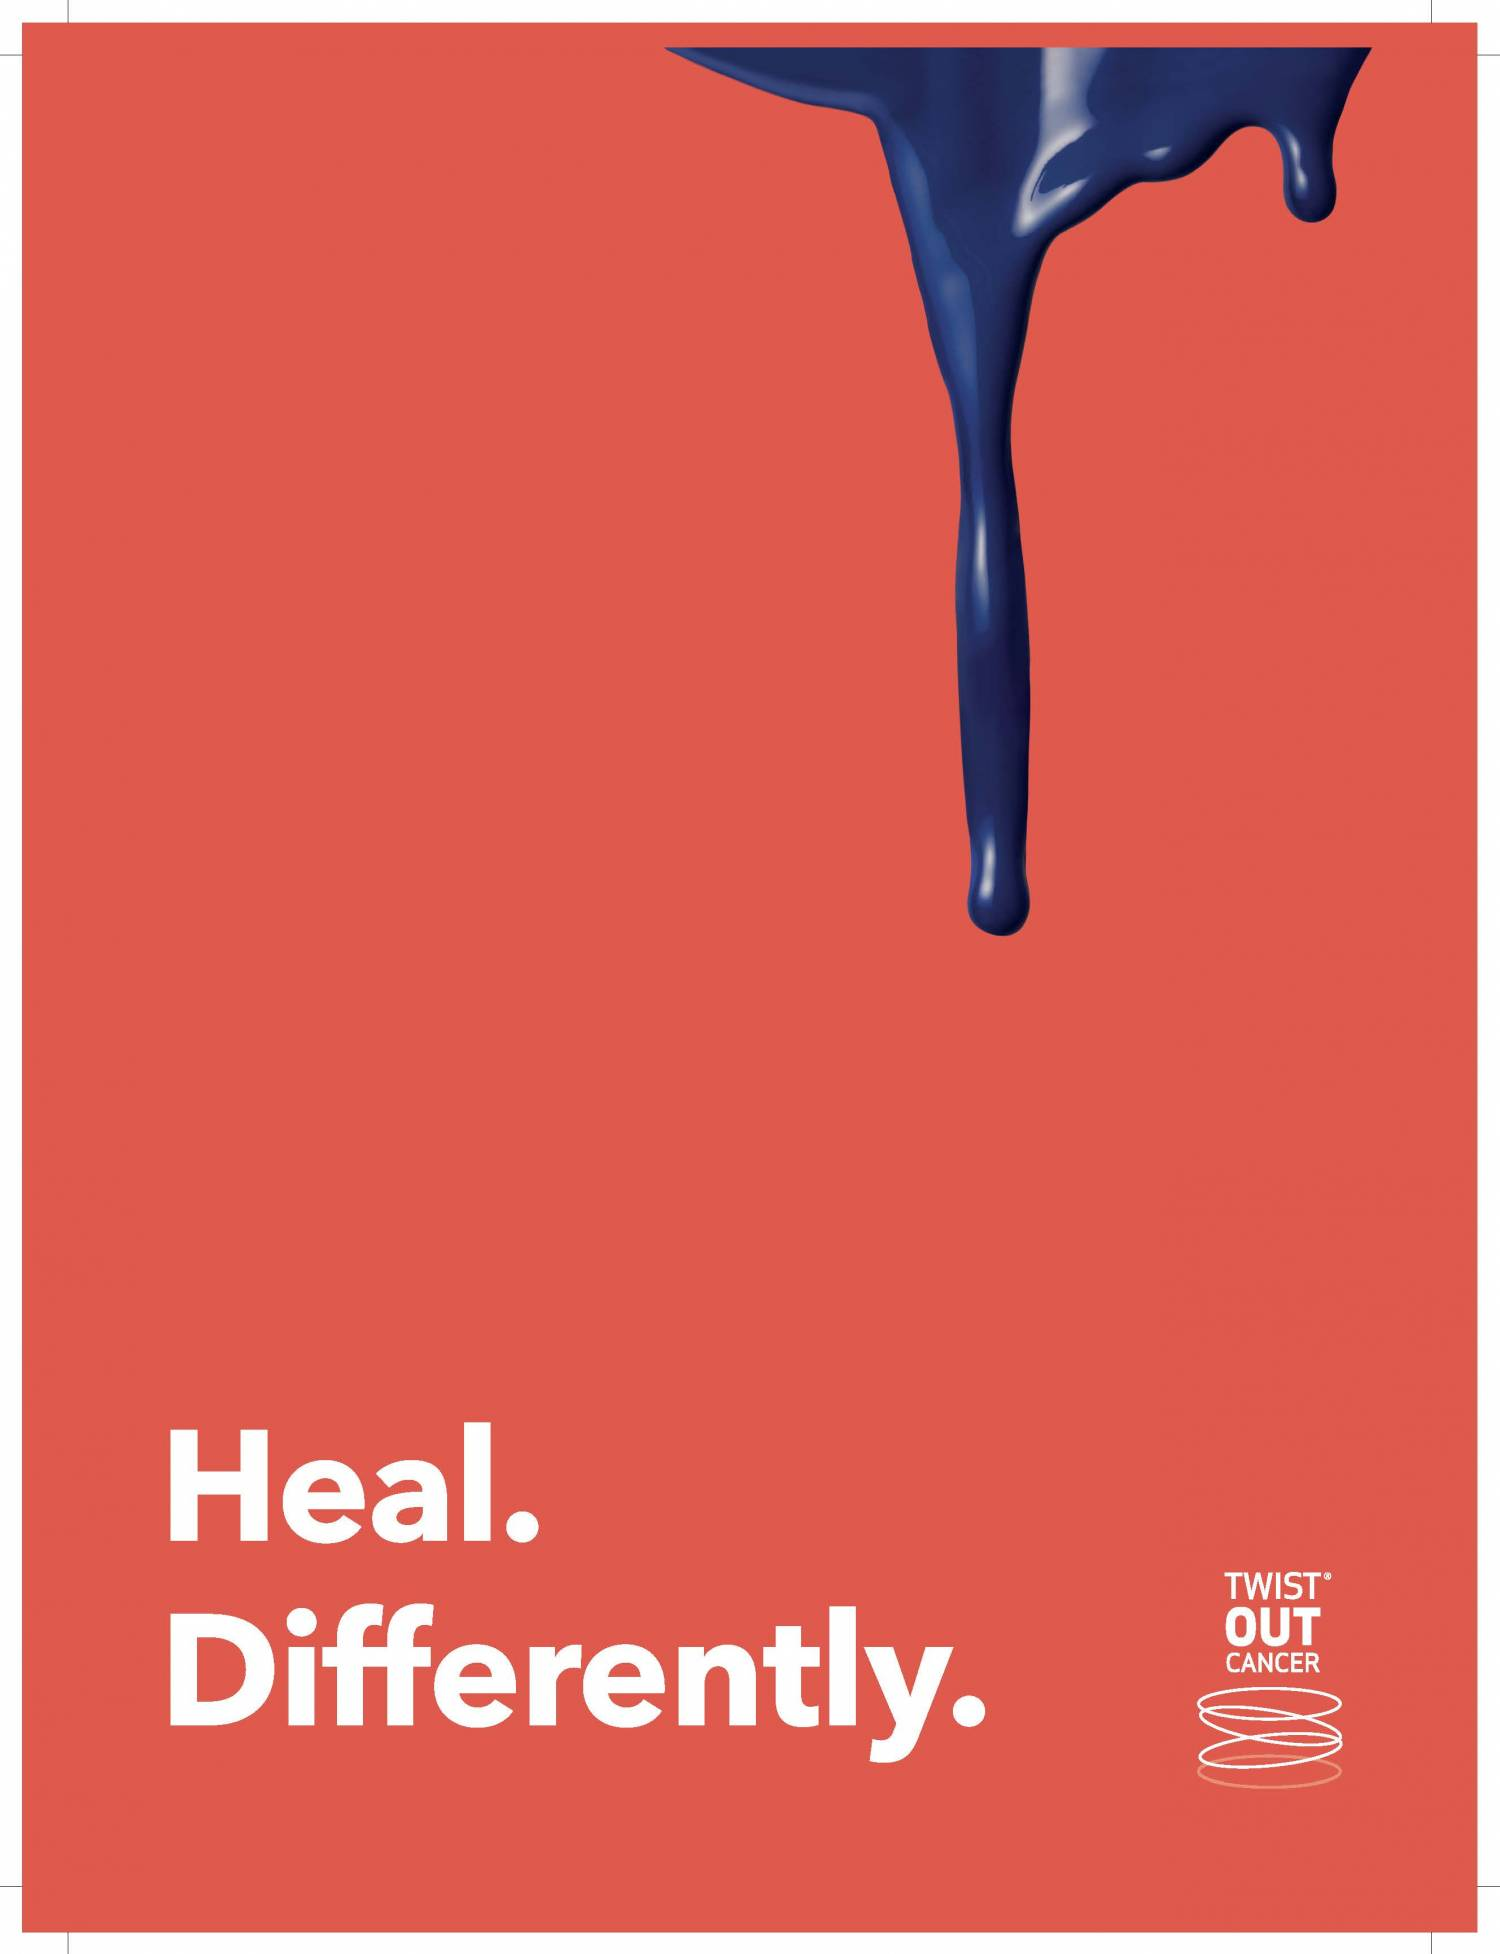 Heal differently